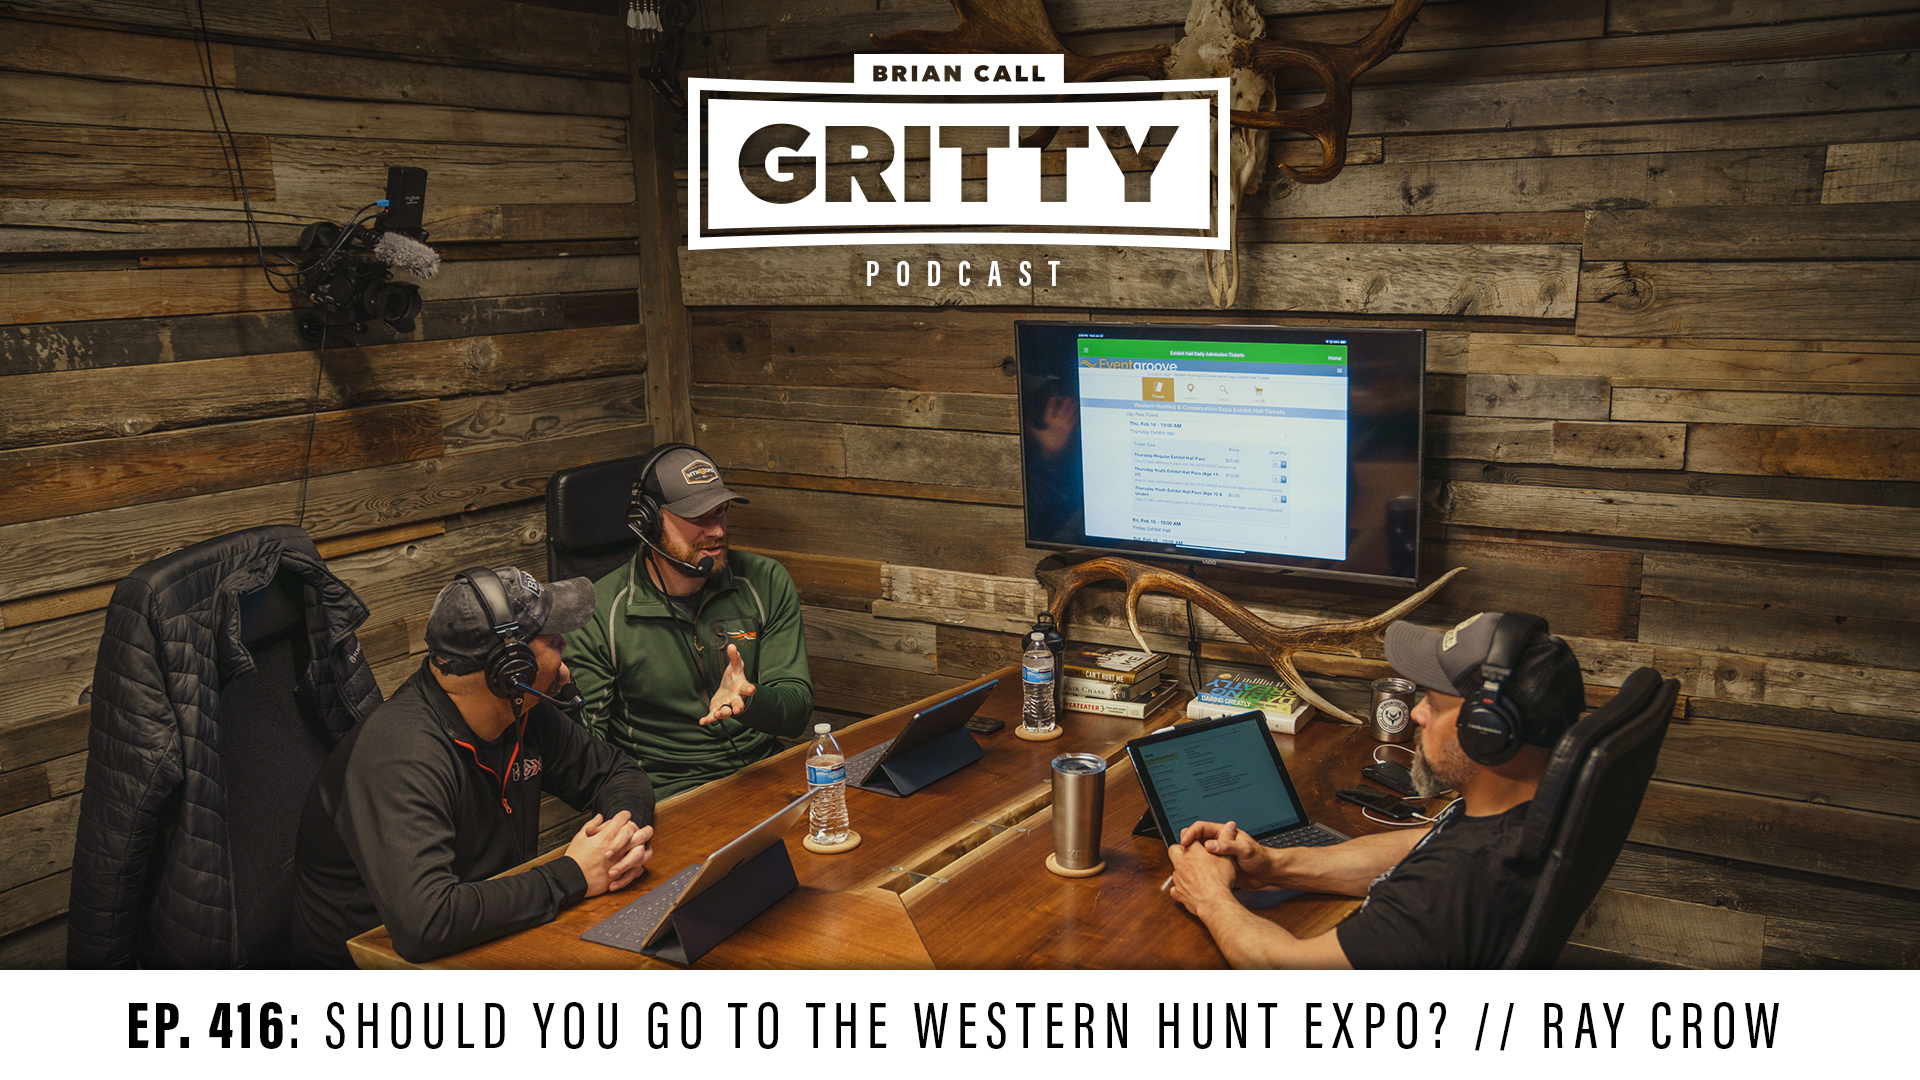 EP. 416: SHOULD YOU GO TO THE WESTERN HUNT EXPO? // RAY CROW